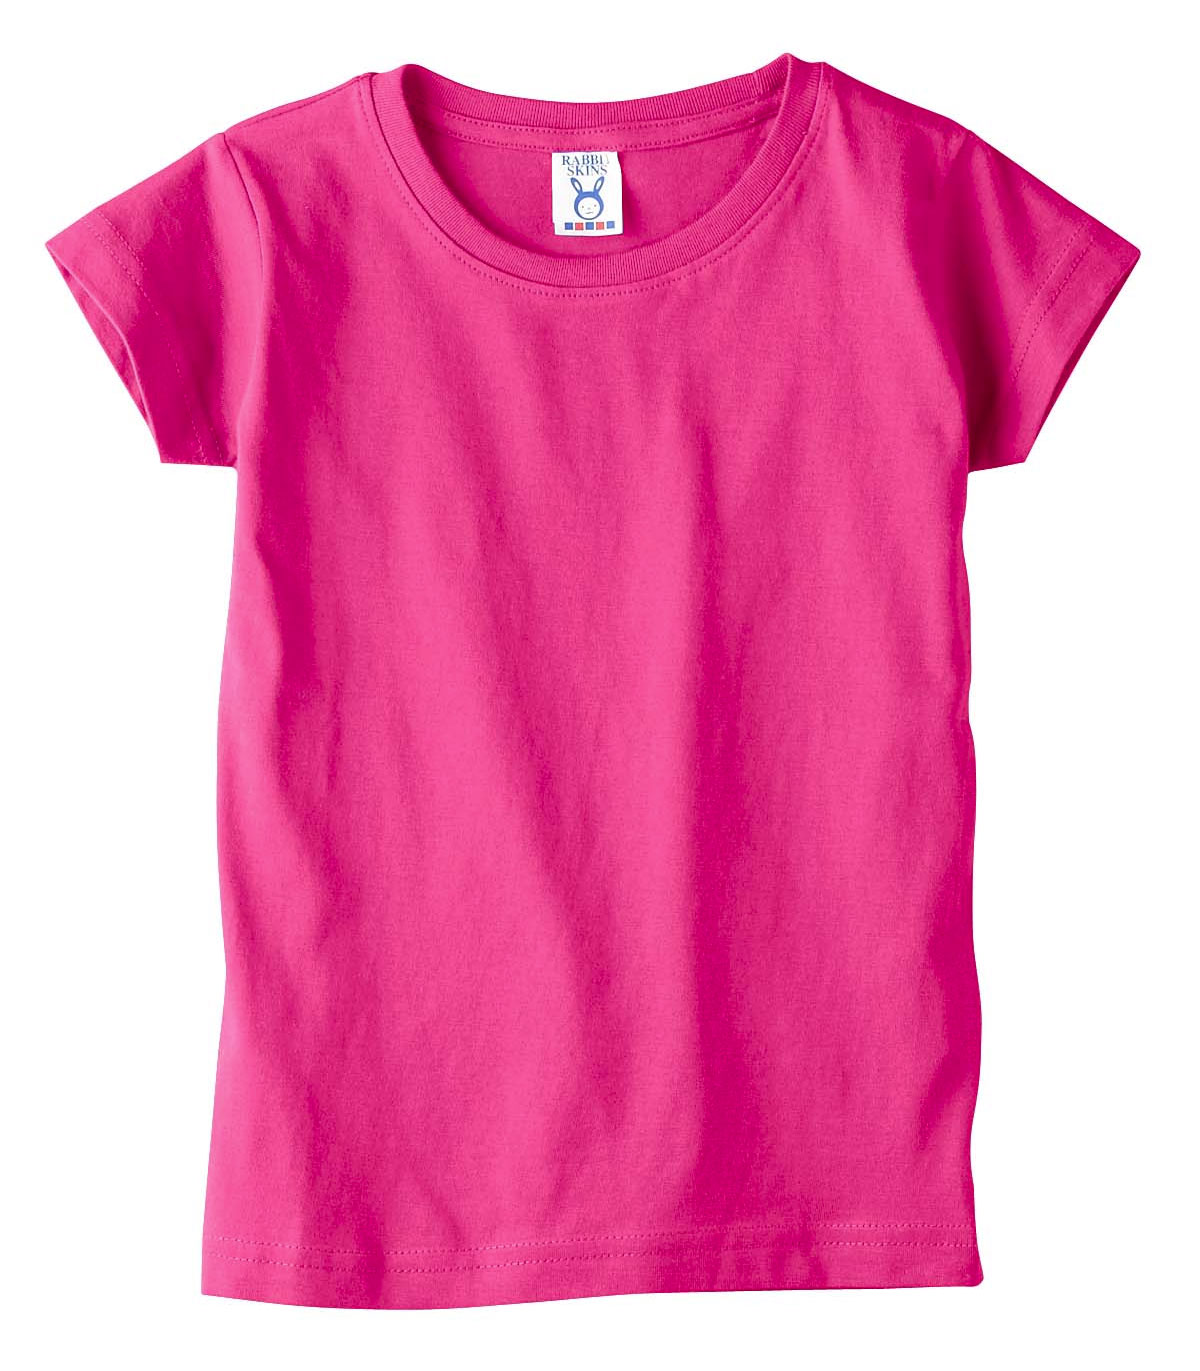 Rabbit Skins Toddler Girls Jersey Tee